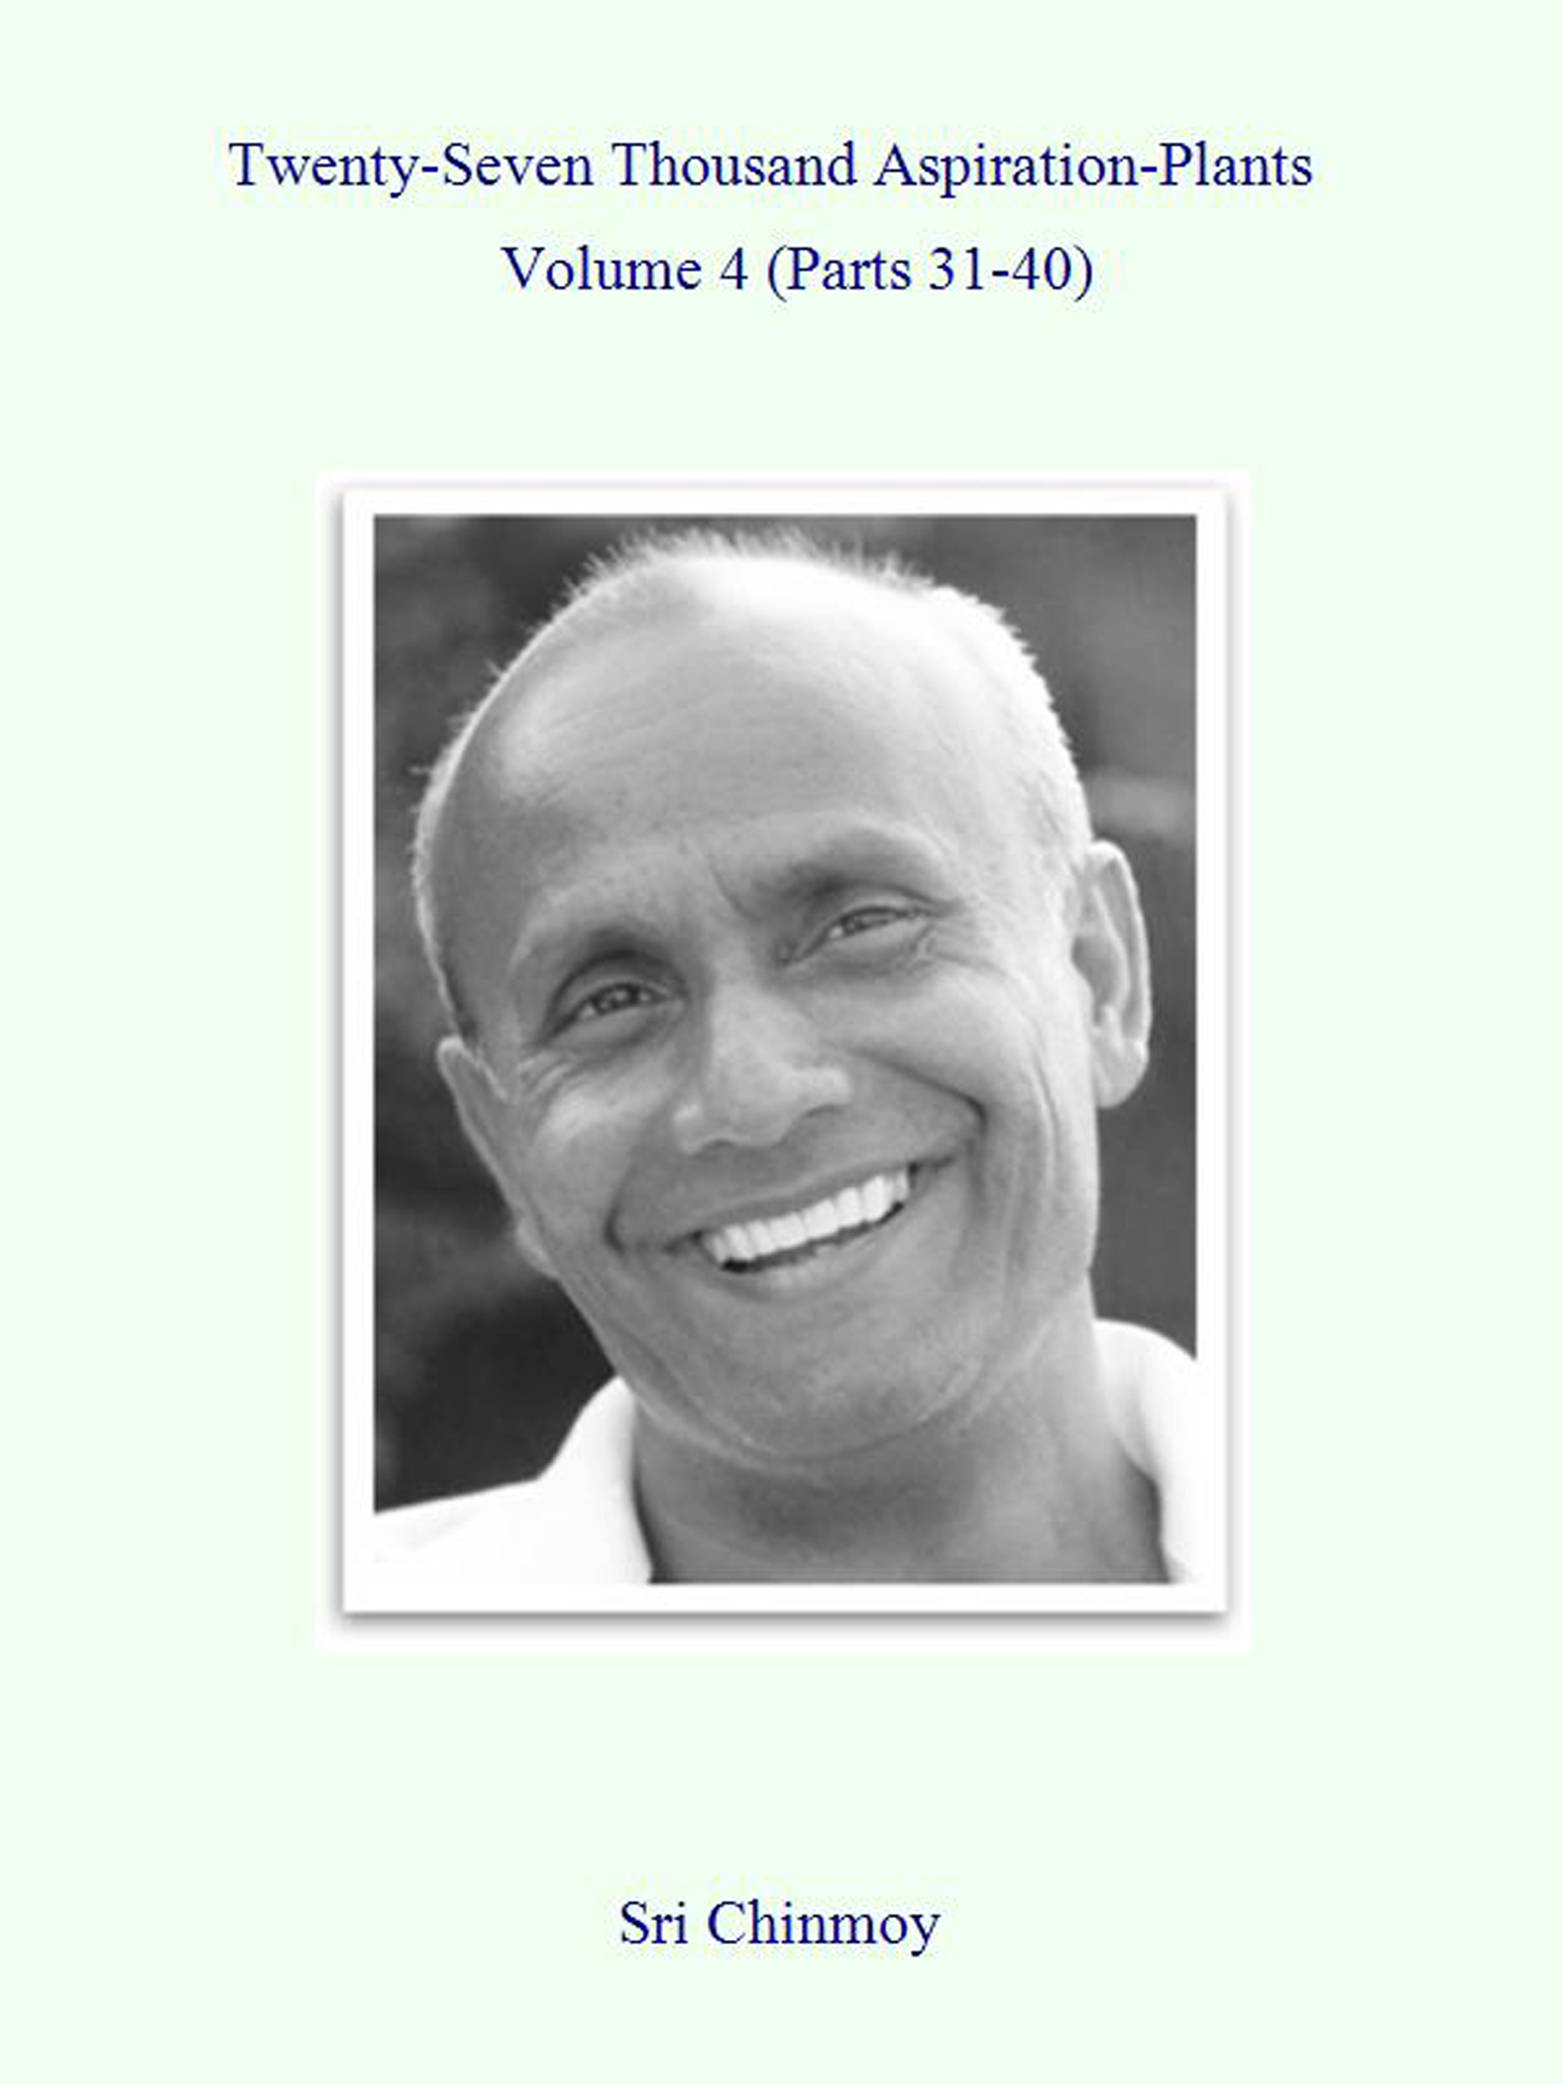 27,000 Aspiration-Plants By: Sri Chinmoy